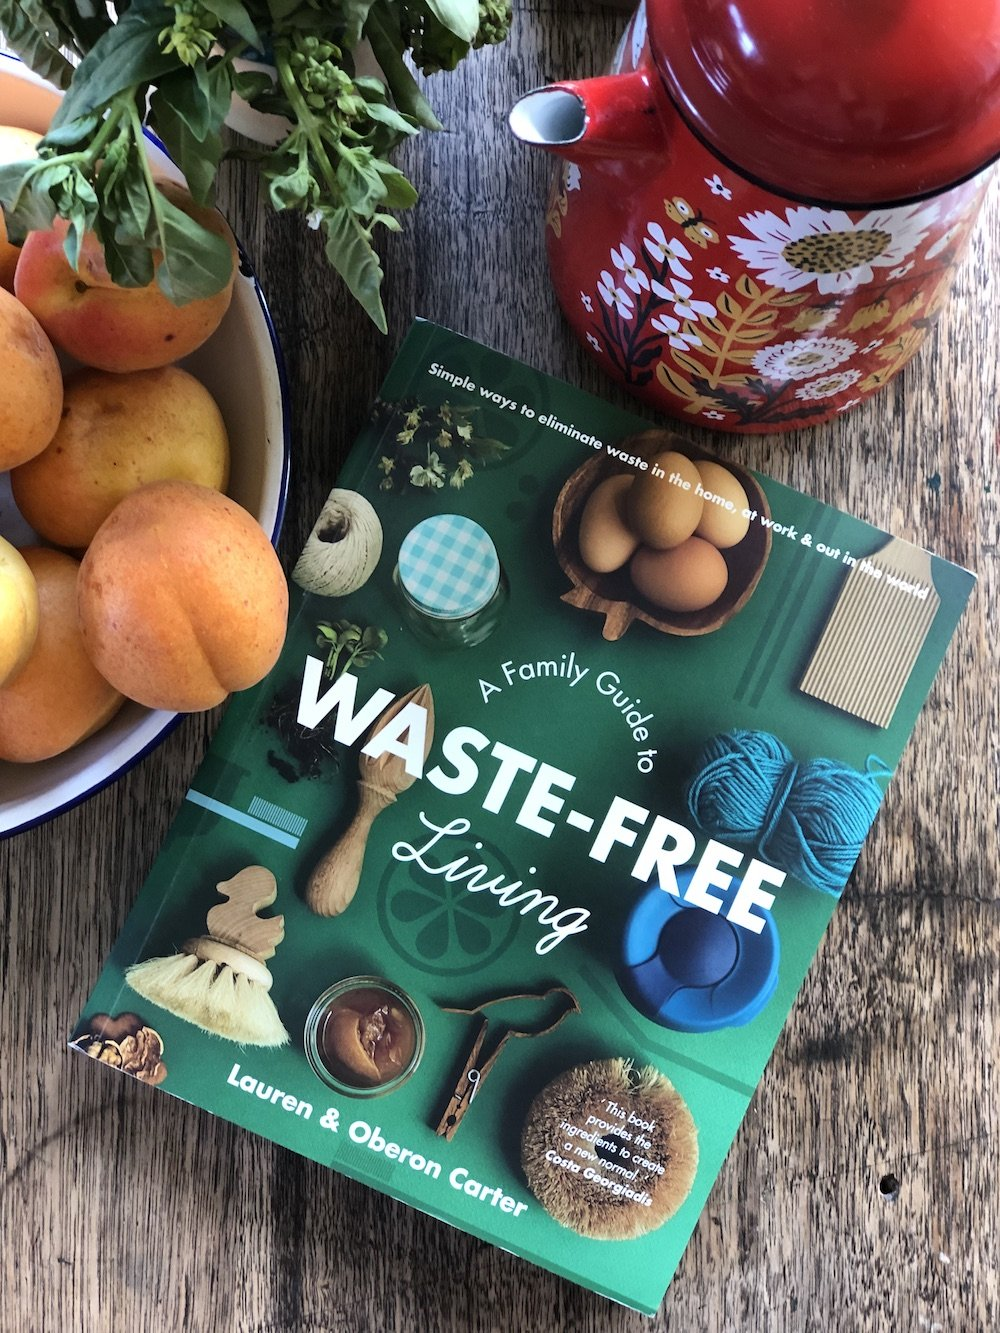 A Family Guide to Waste Free Living by Lauren & Oberon Carter - Stock Your Pantry